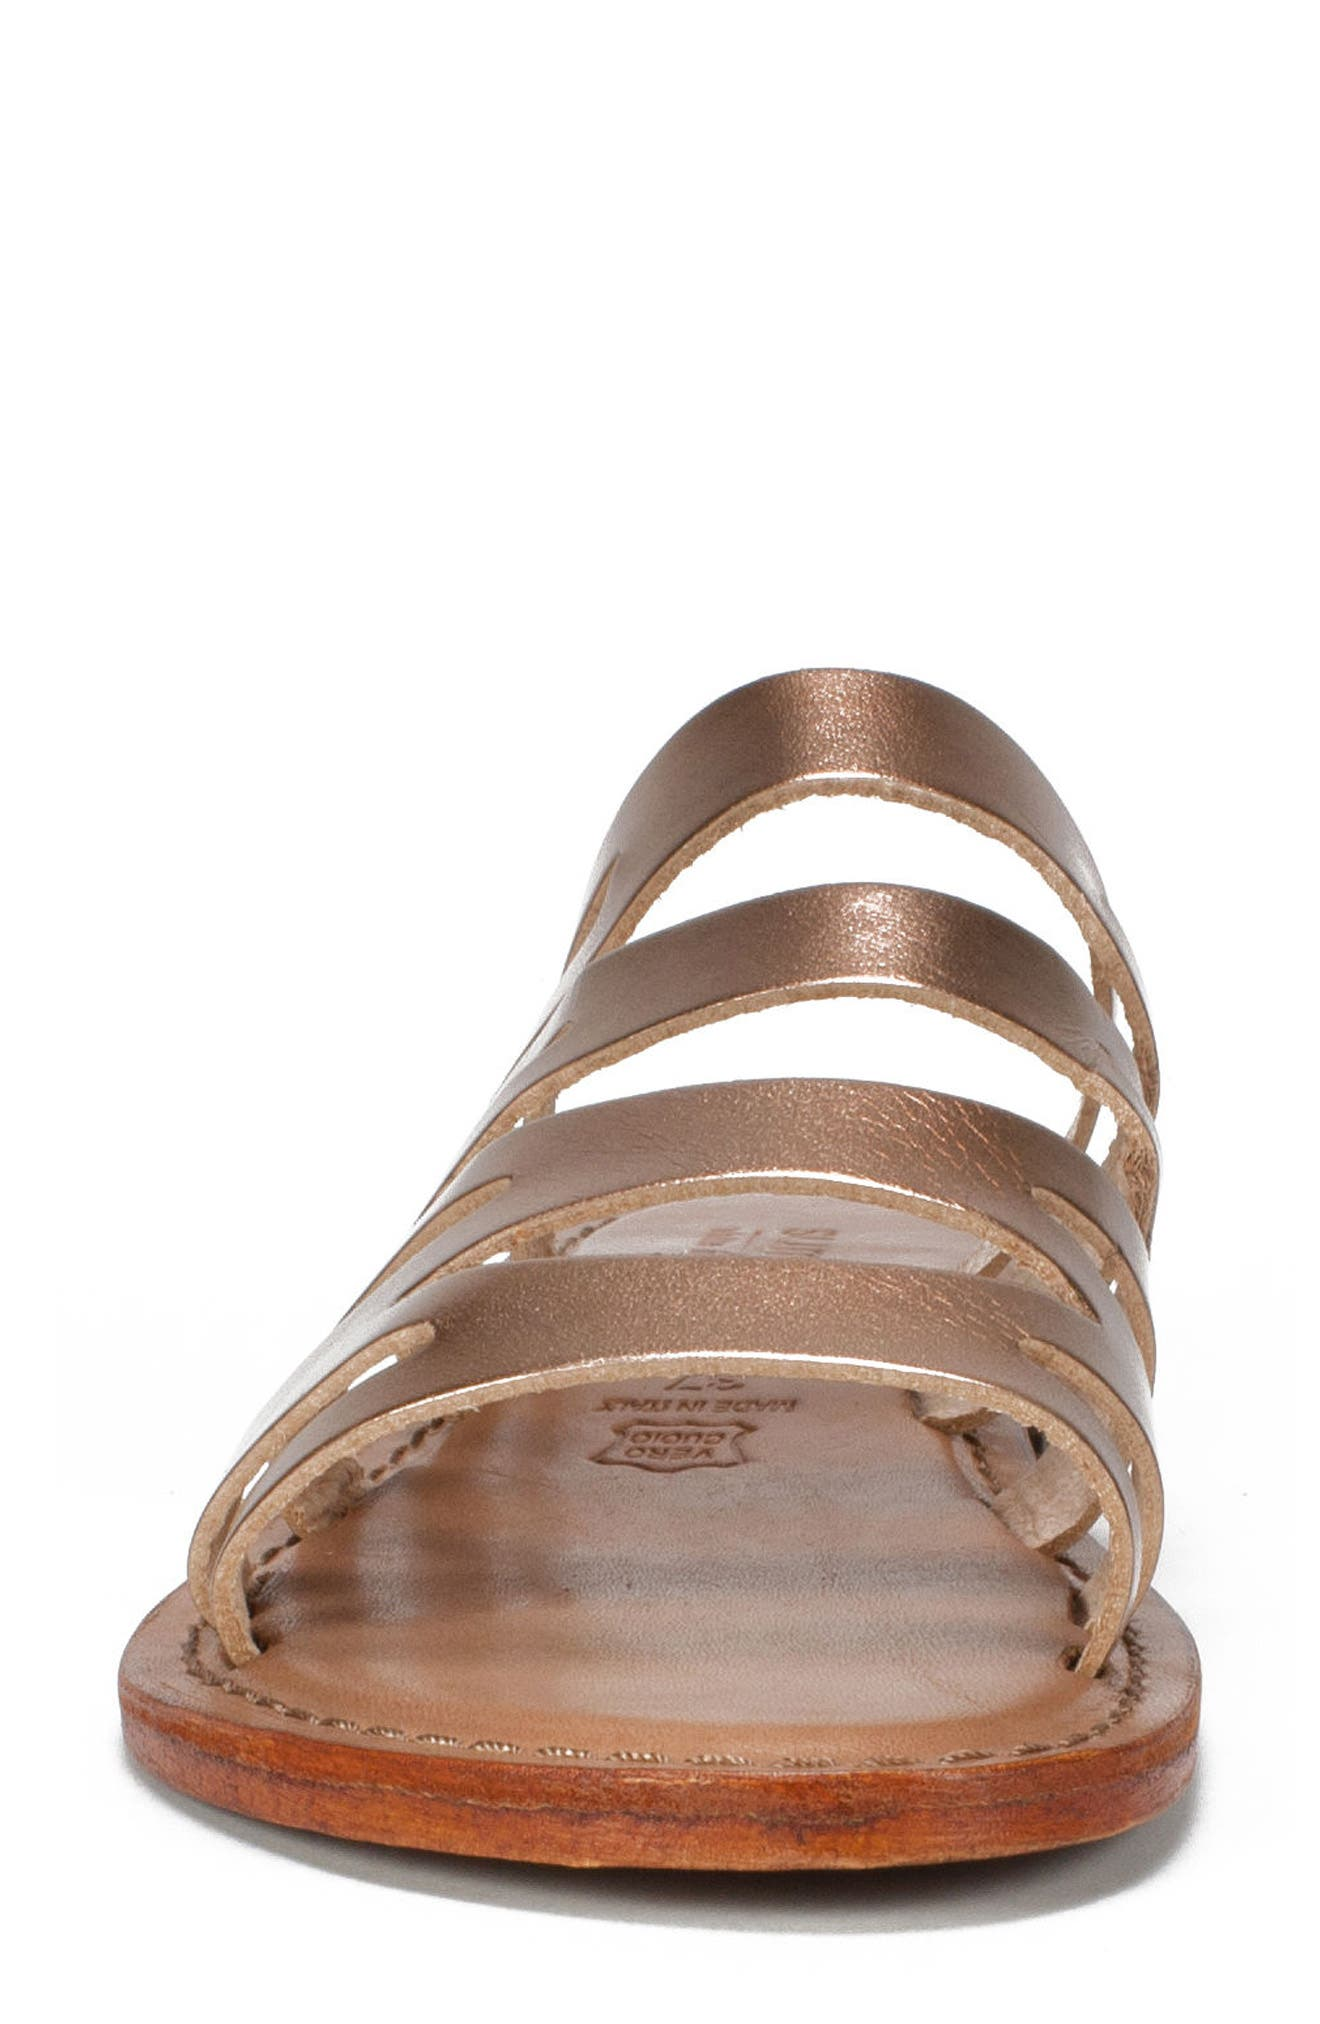 Eden Sandal,                             Alternate thumbnail 4, color,                             Rose Gold Leather